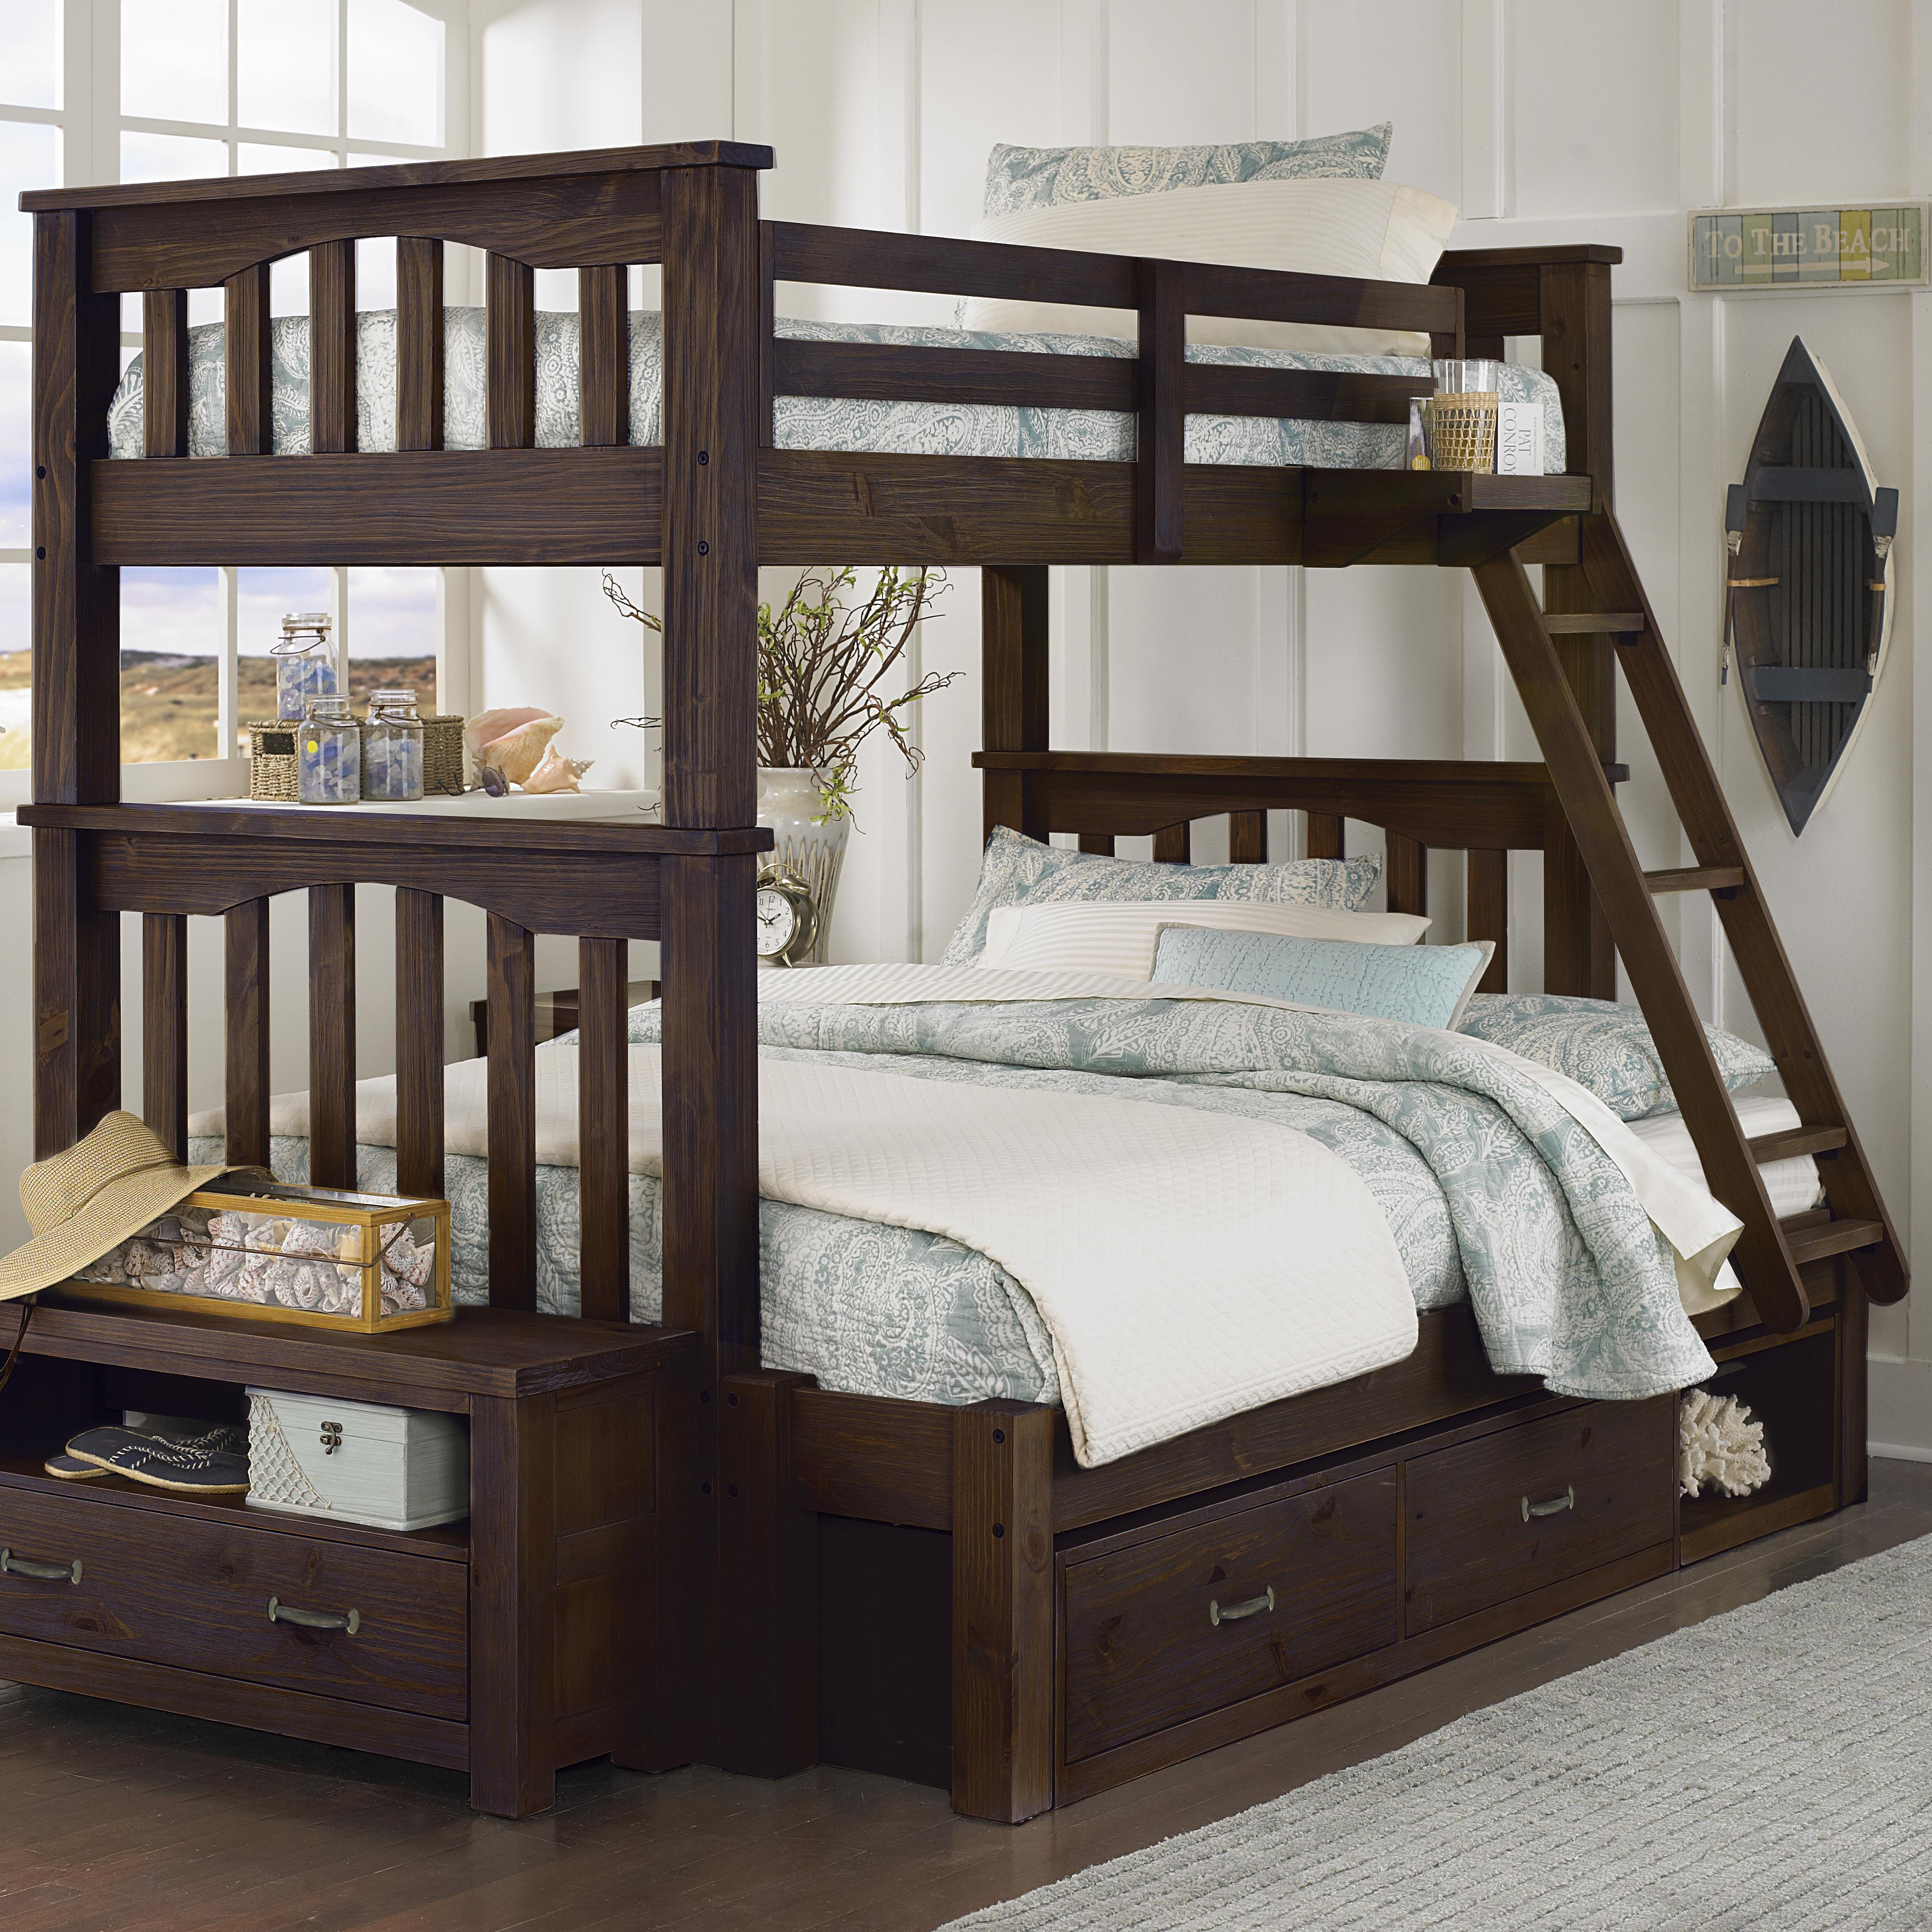 Twin Over Full Harper Bunk Bed With Storage